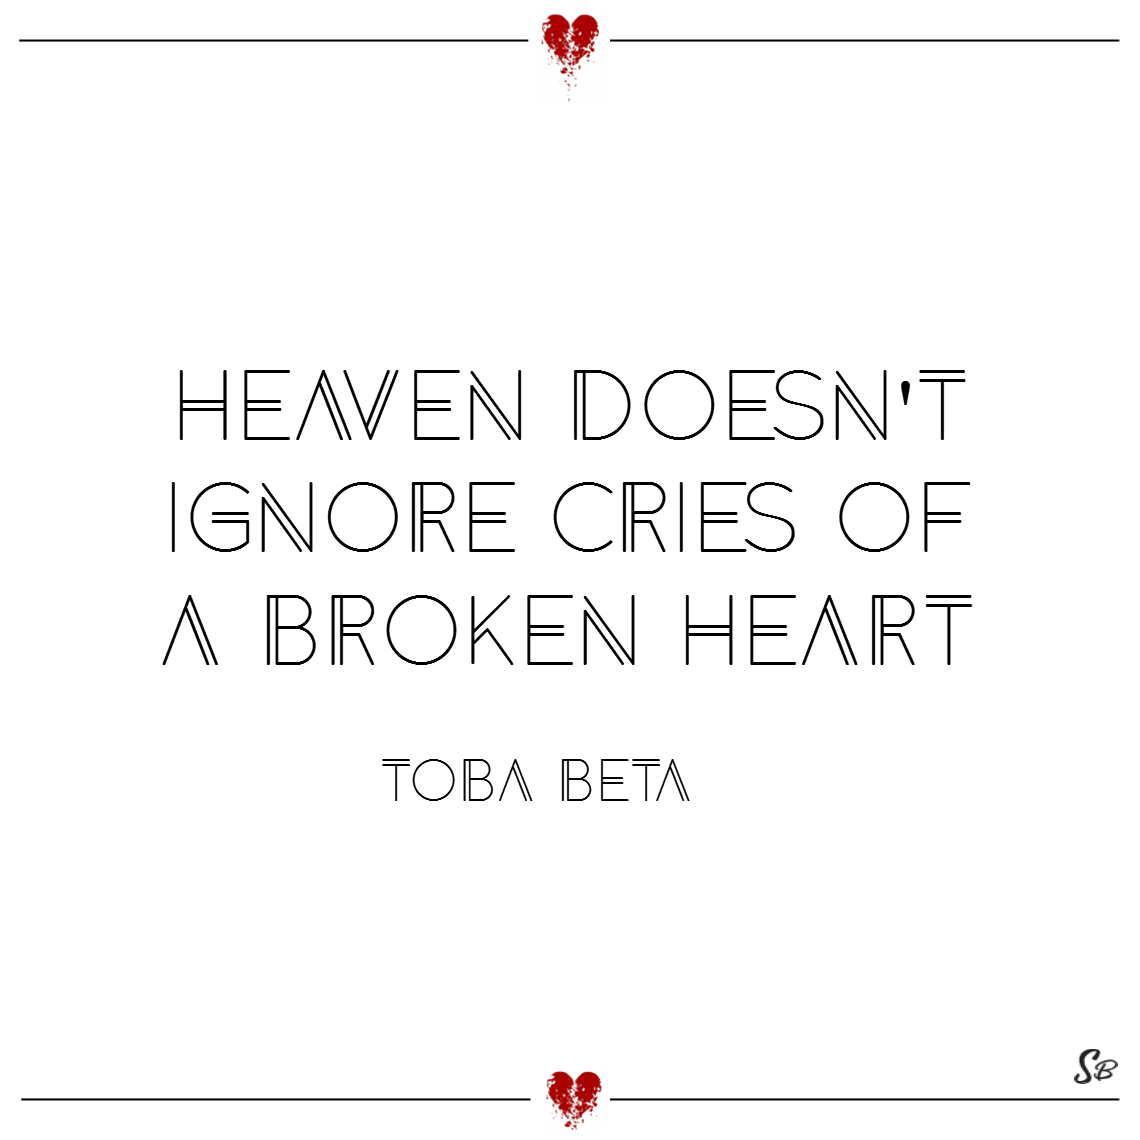 Heaven doesn't ignore cries of a broken heart. – toba beta